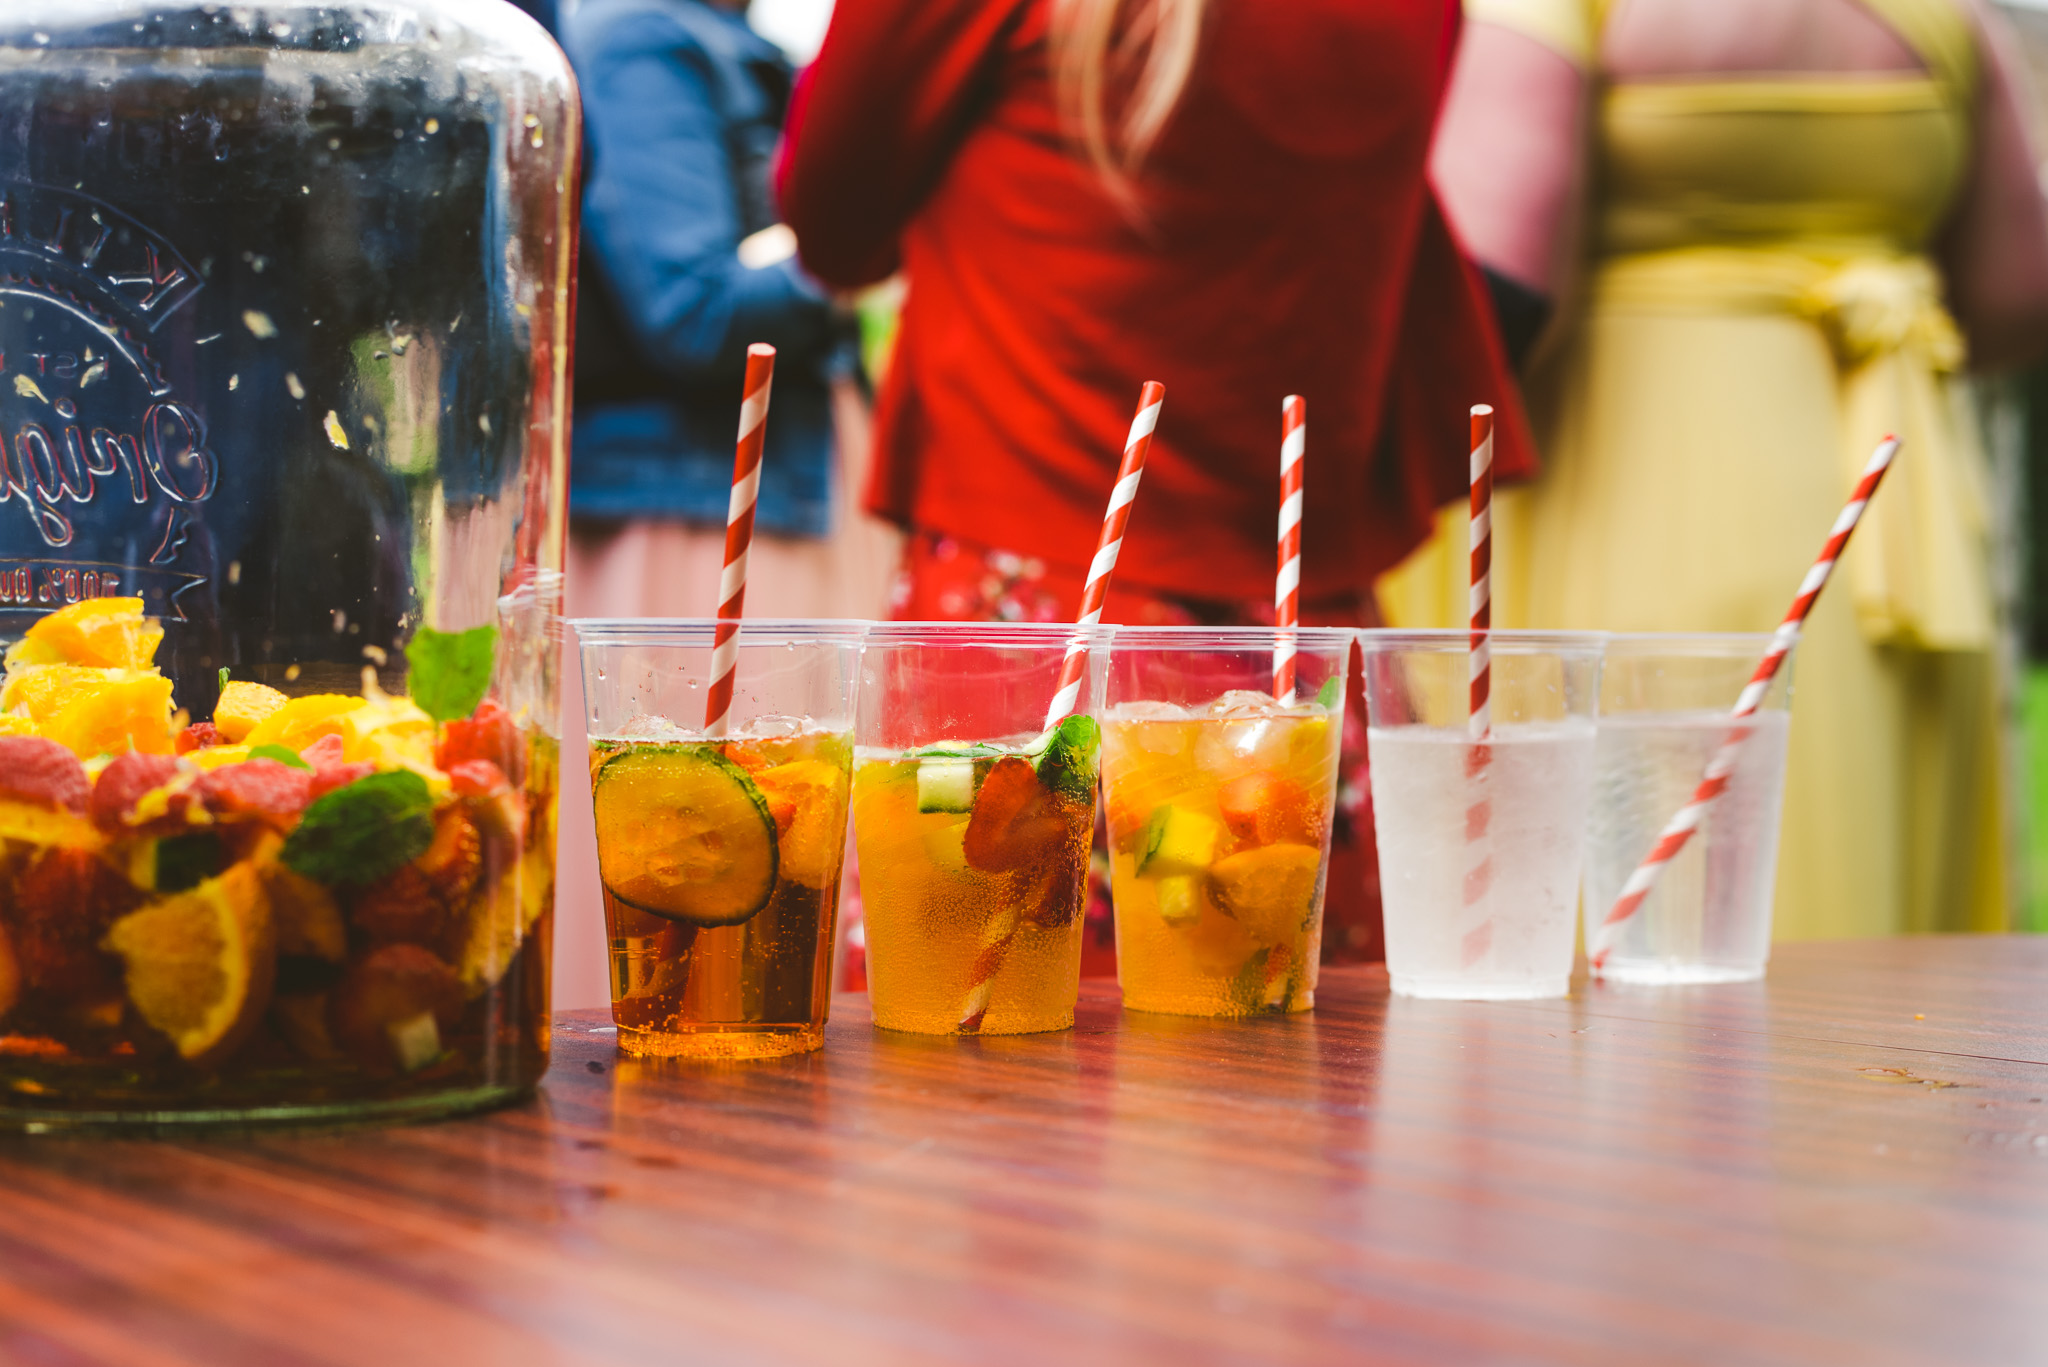 Pimms station at DIY Village Hall Wedding